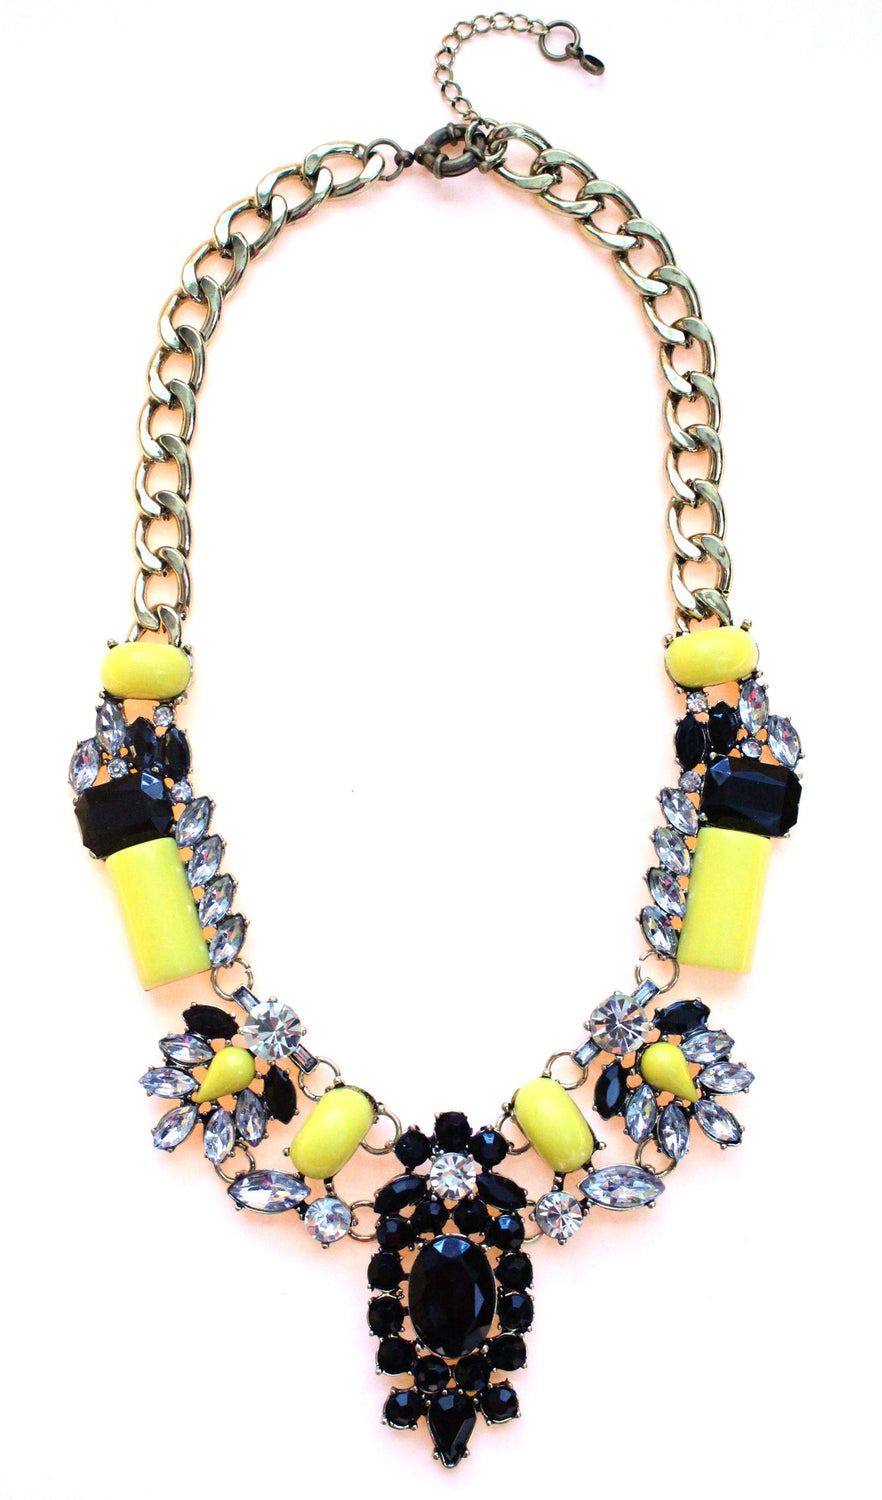 Luxe Crystal-Encrusted Collar Statement Necklace- Yellow